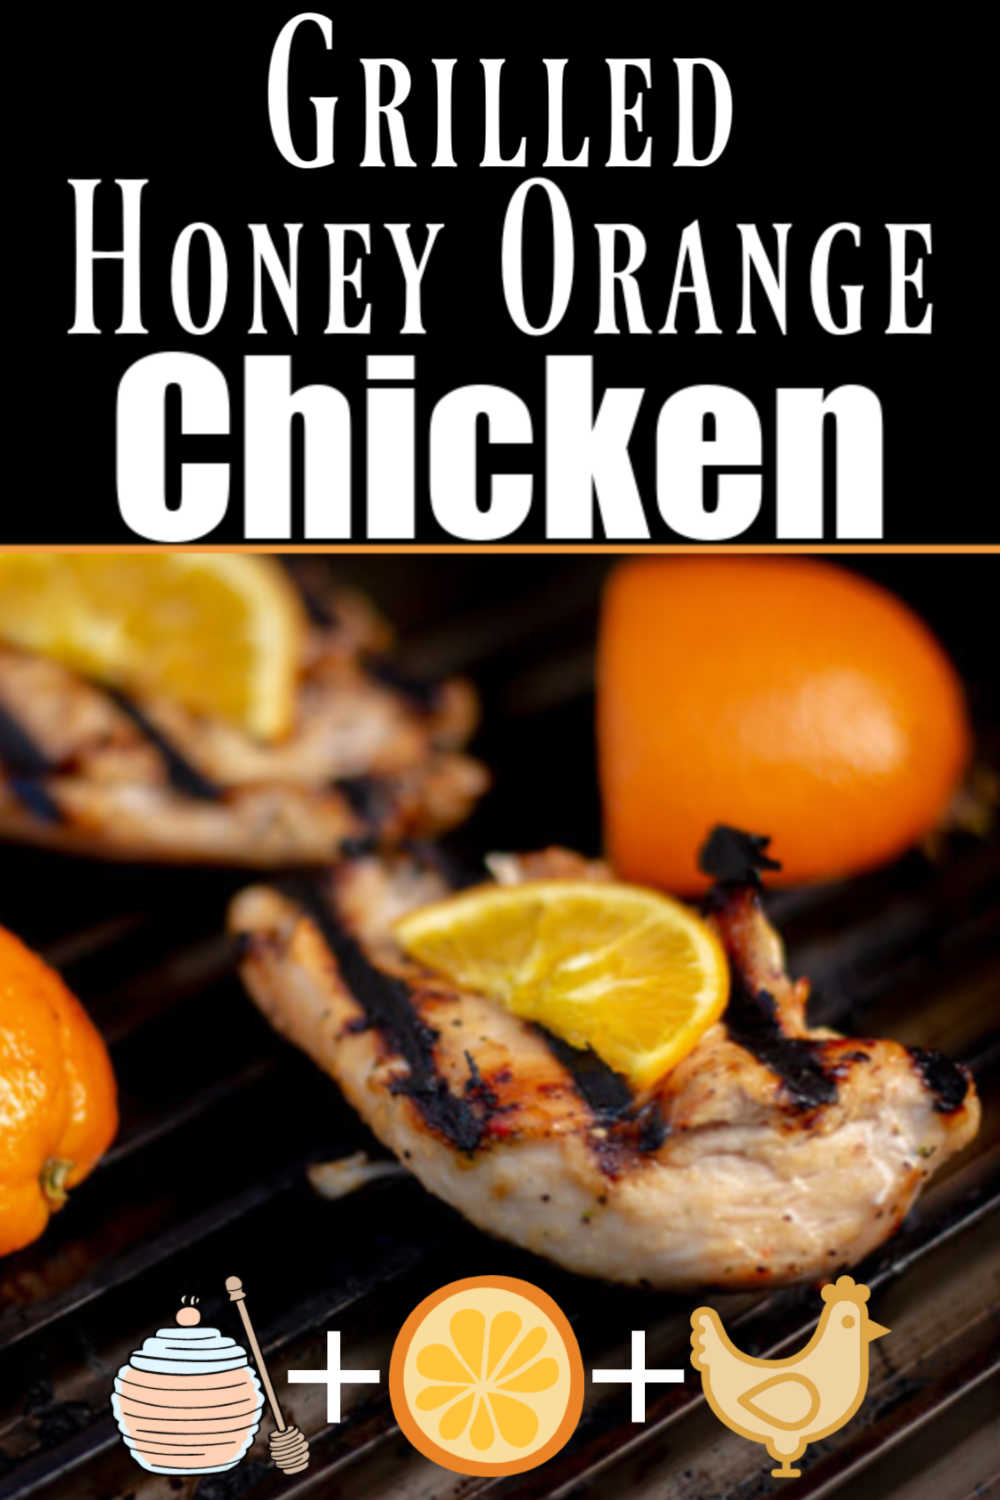 Grilled Honey Orange Chicken Recipe